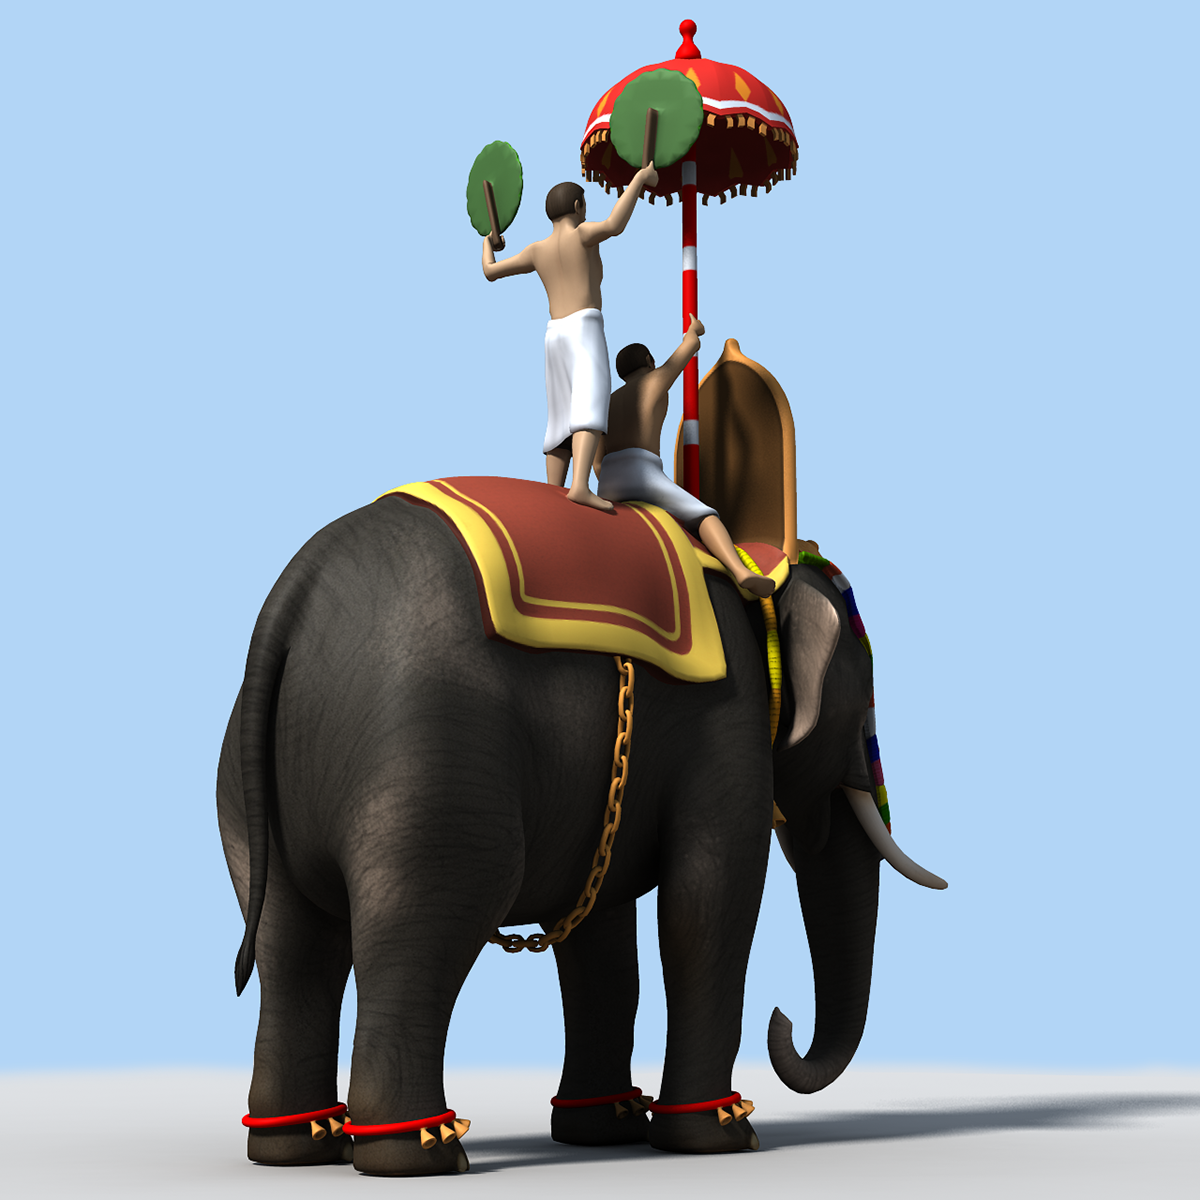 Download Kerala Elephant Png Hd Png Gif Base ✅free for personal use only ❌commercial usage: download kerala elephant png hd png